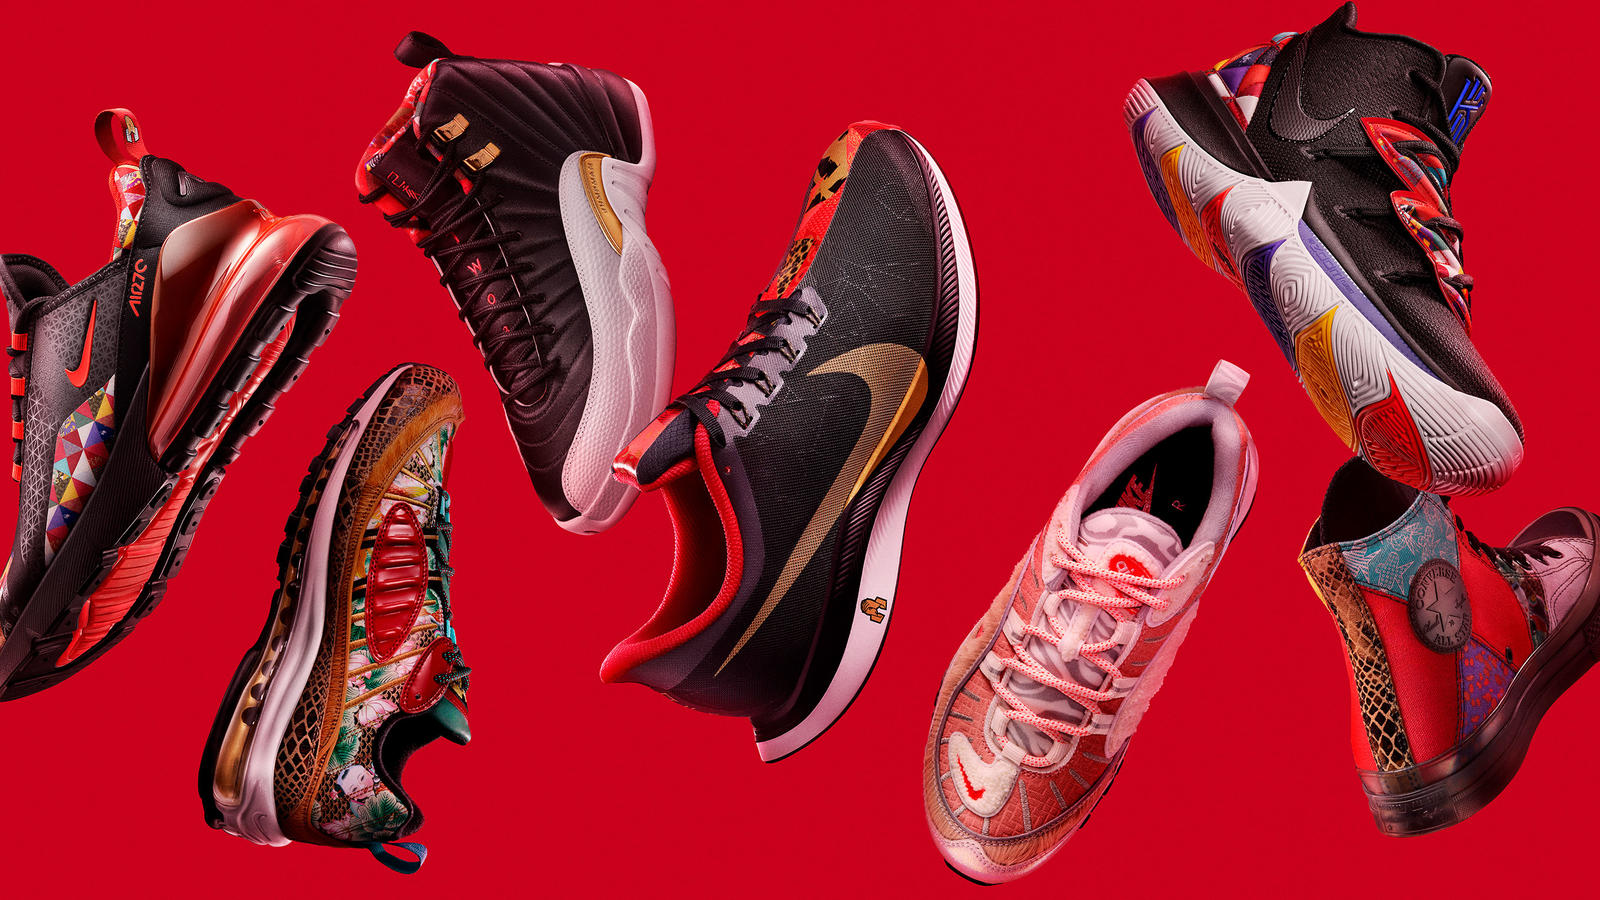 6d6388a4b0545 The Year of the Pig Chinese New Year Collection Brings Together 12 Years of  Nike CNY